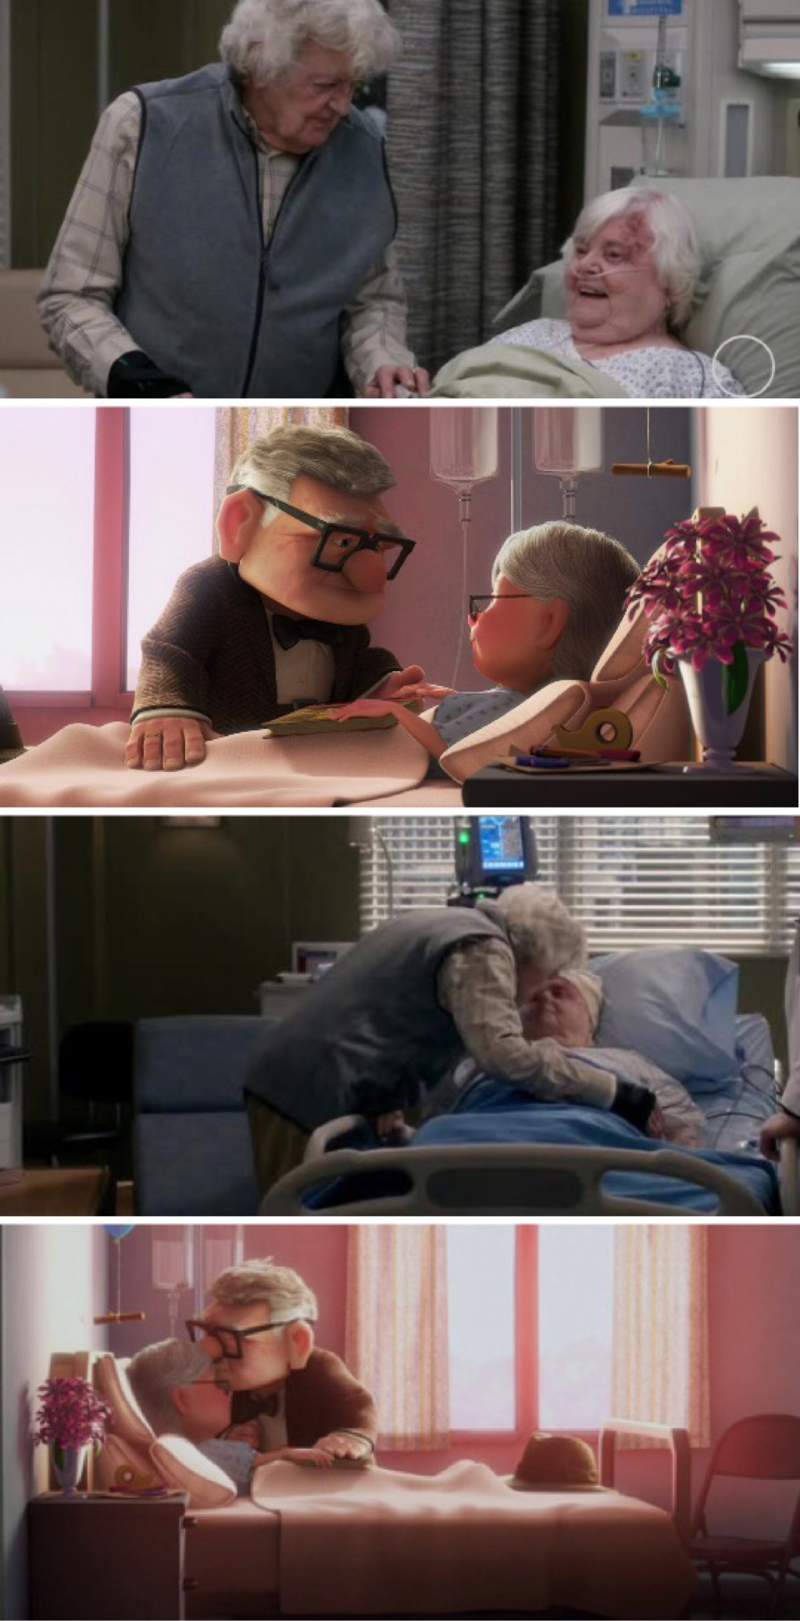 They remind me of Carl & Ellie from UP so much! This story kills me 😢